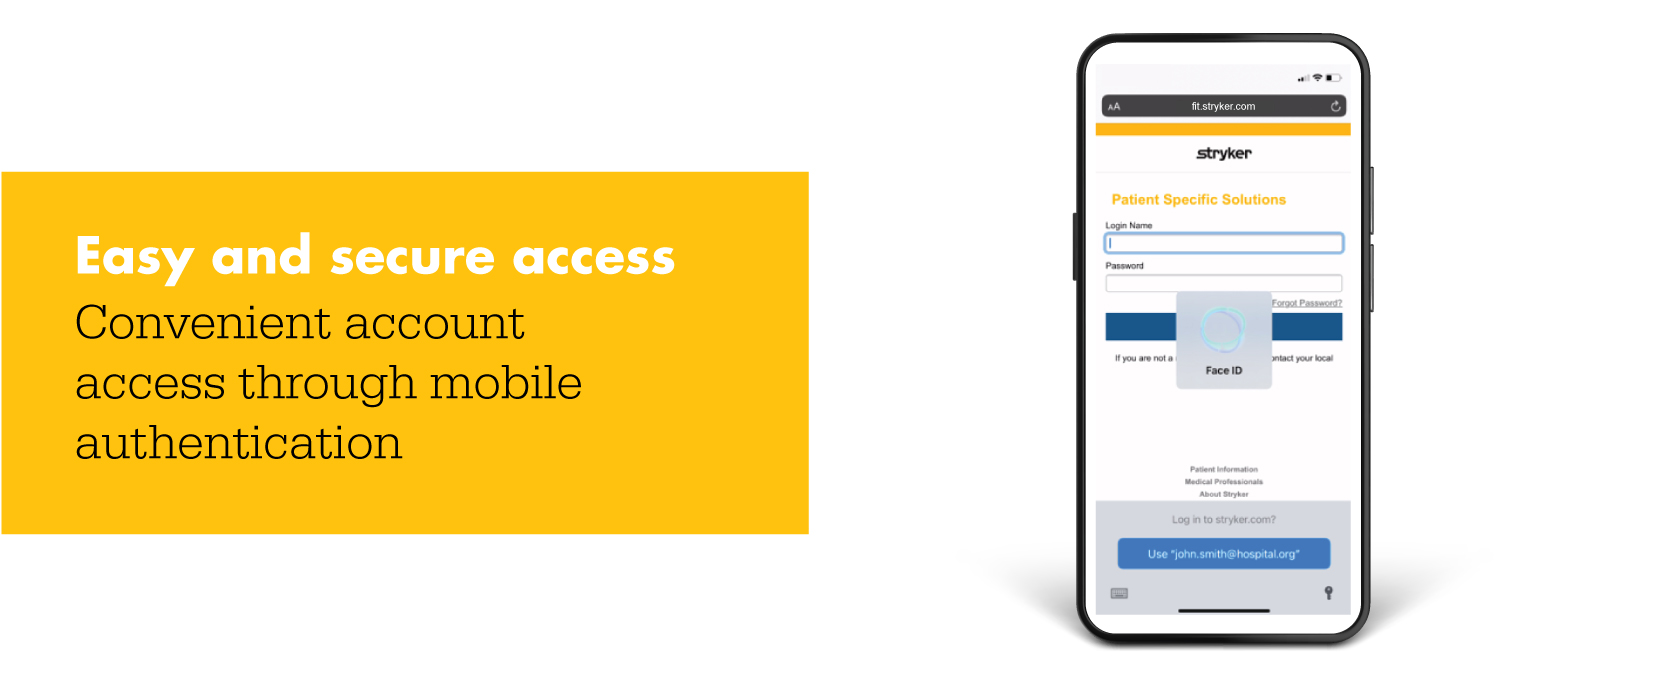 Easy and secure access